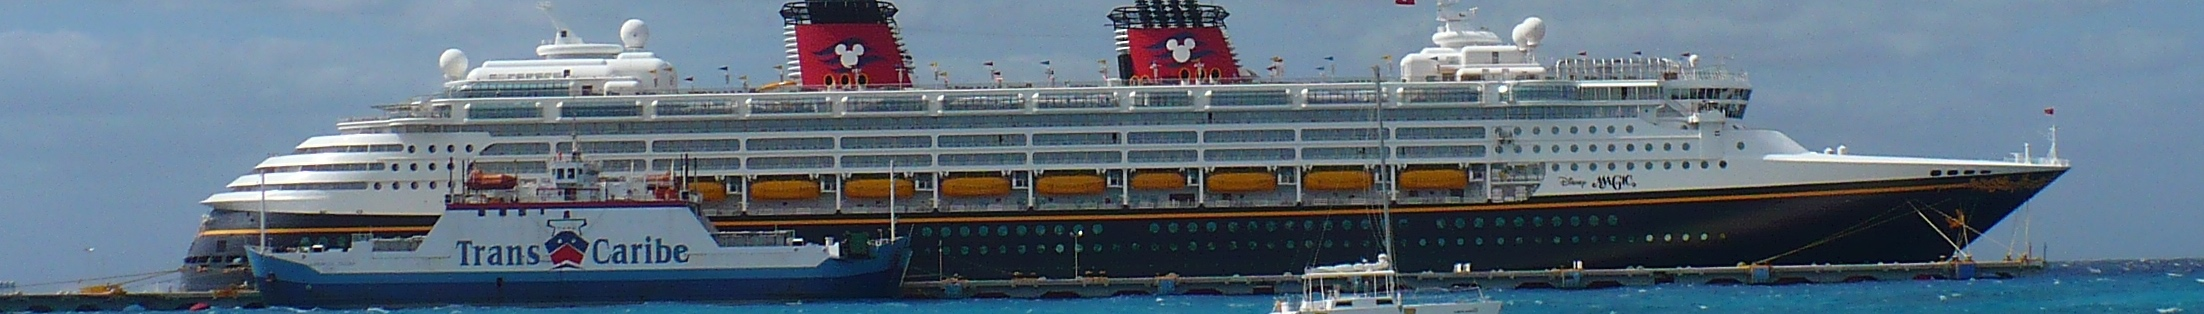 Disney Cruise Line Travel Guide At Wikivoyage - Track disney cruise ship